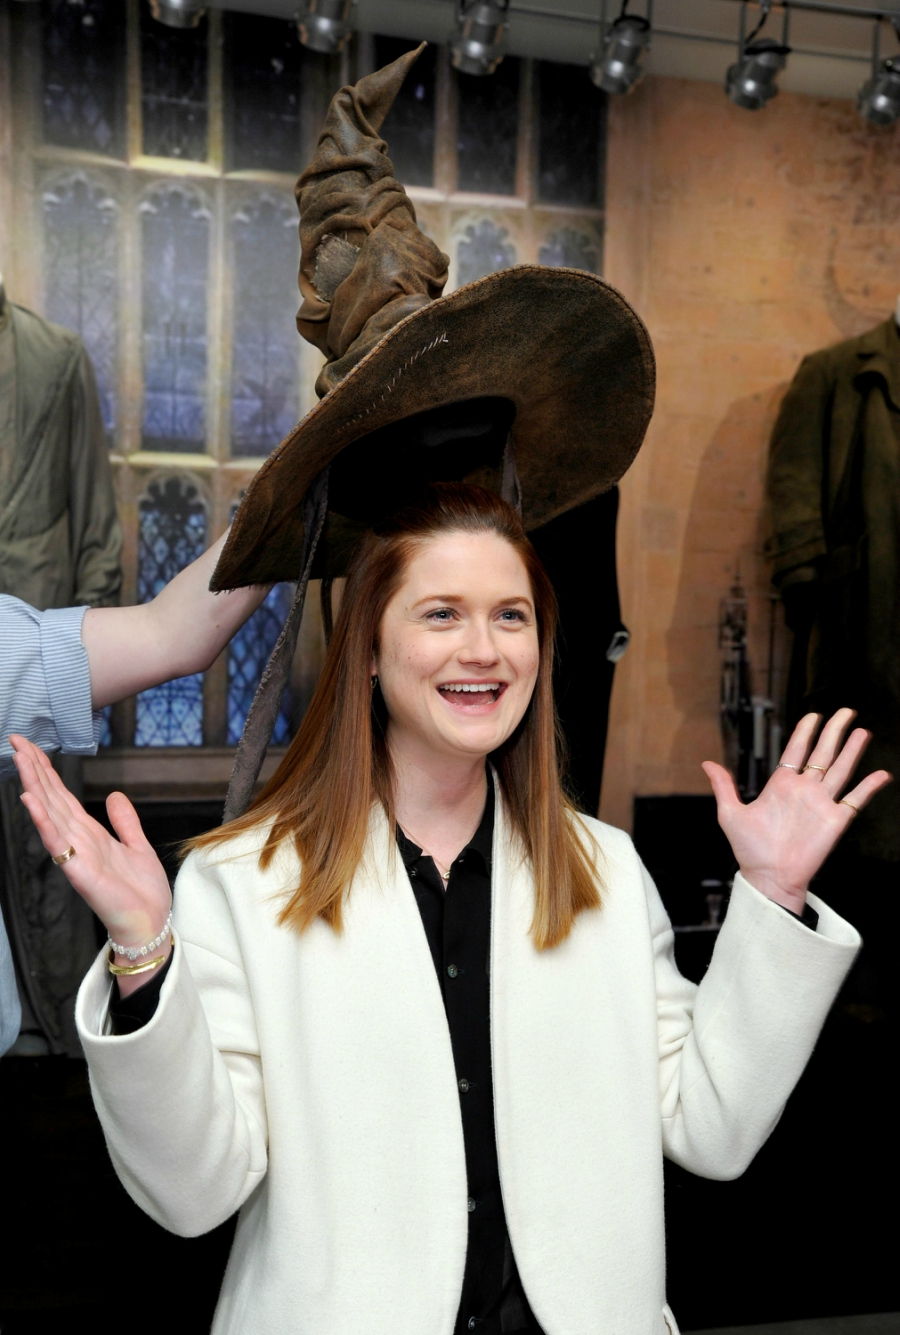 Bonnie Wright putting on the sorting hat